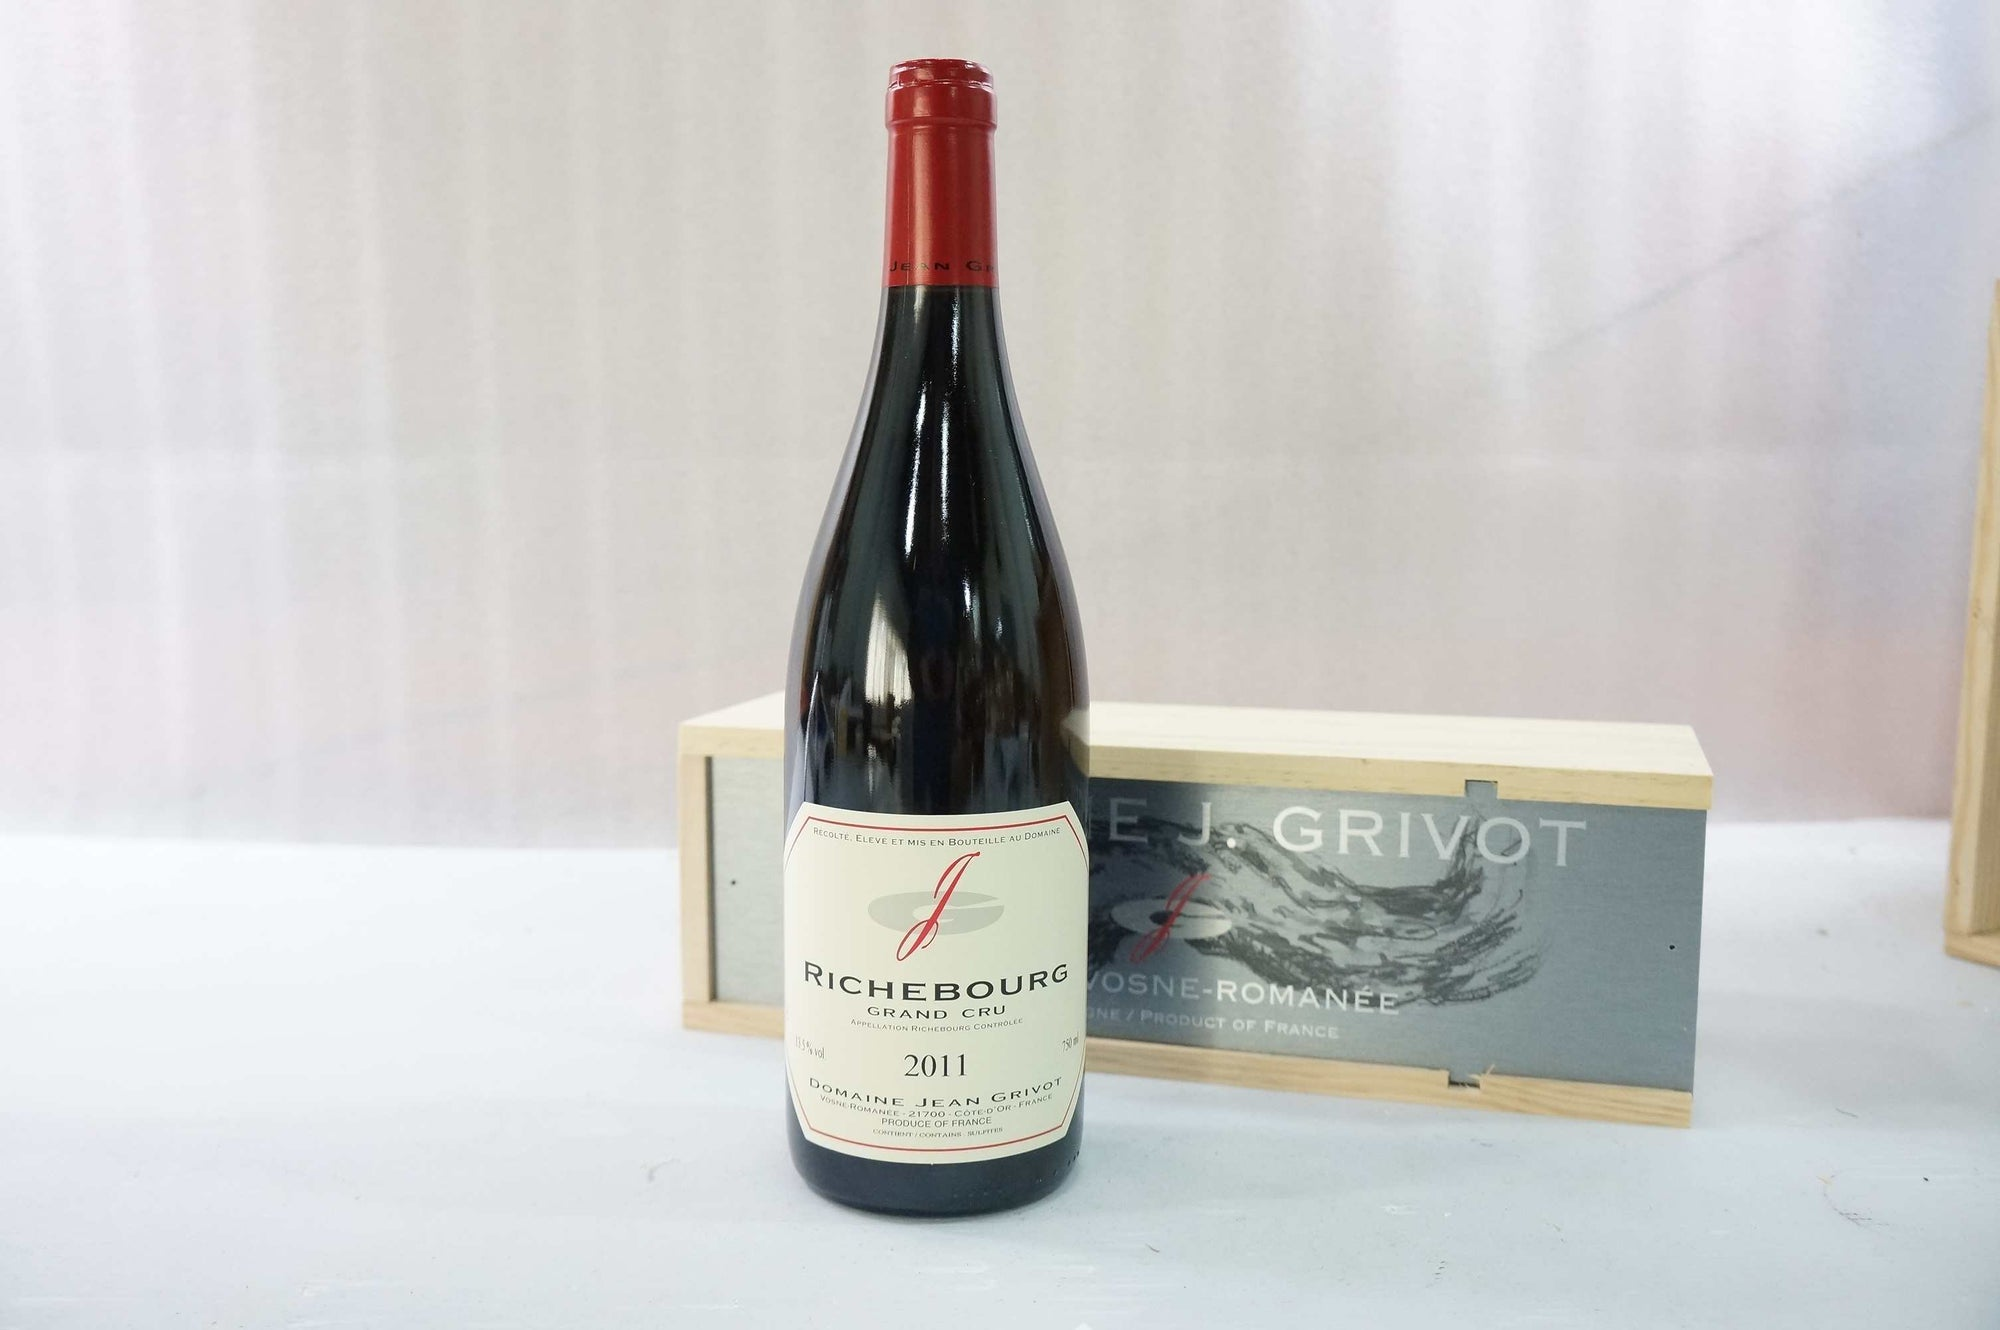 Jean Grivot Richebourg Grand Cru 2011